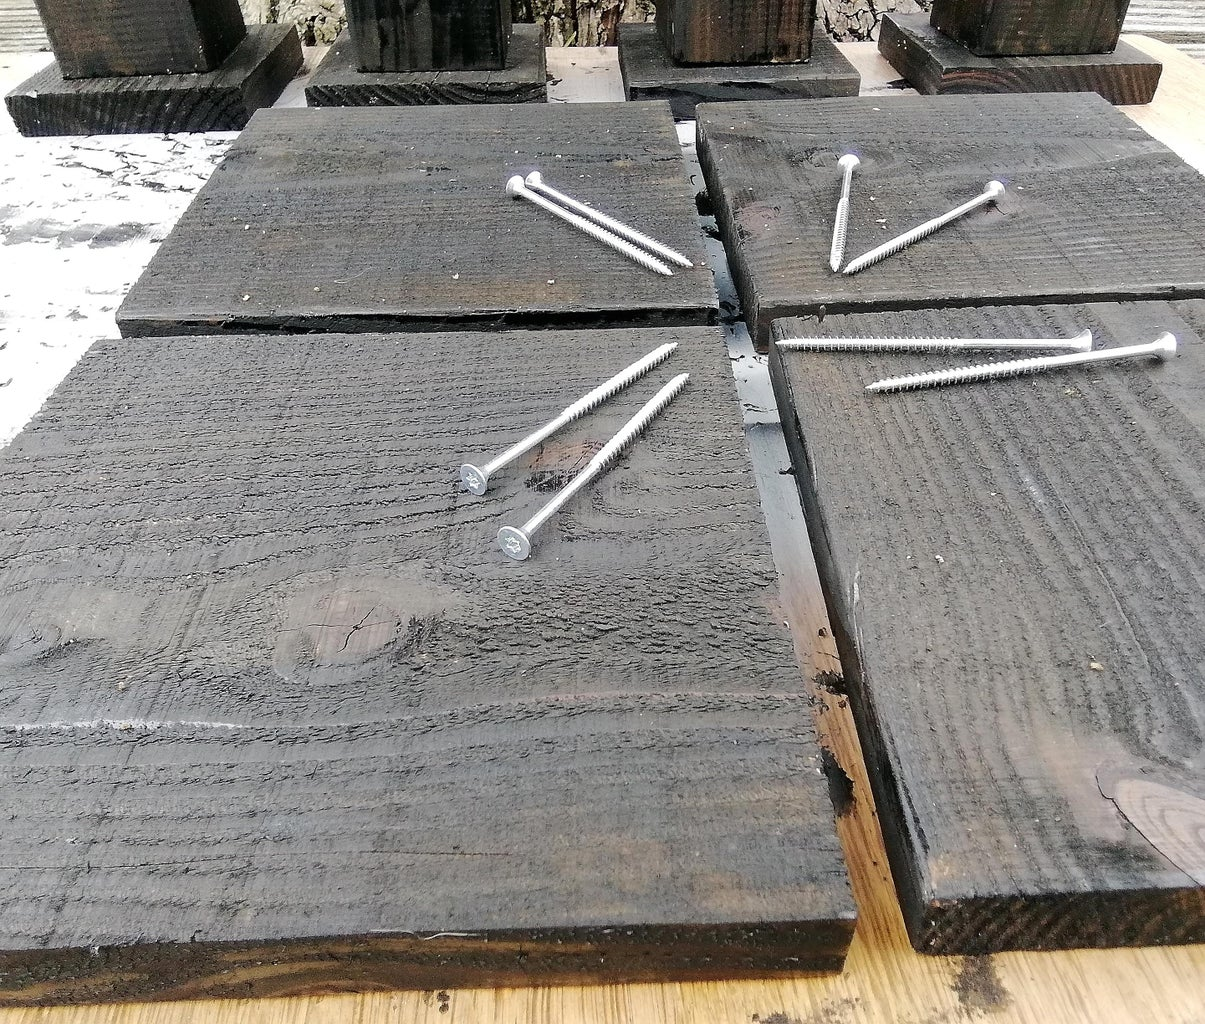 Assemble the Posts: Base Plate